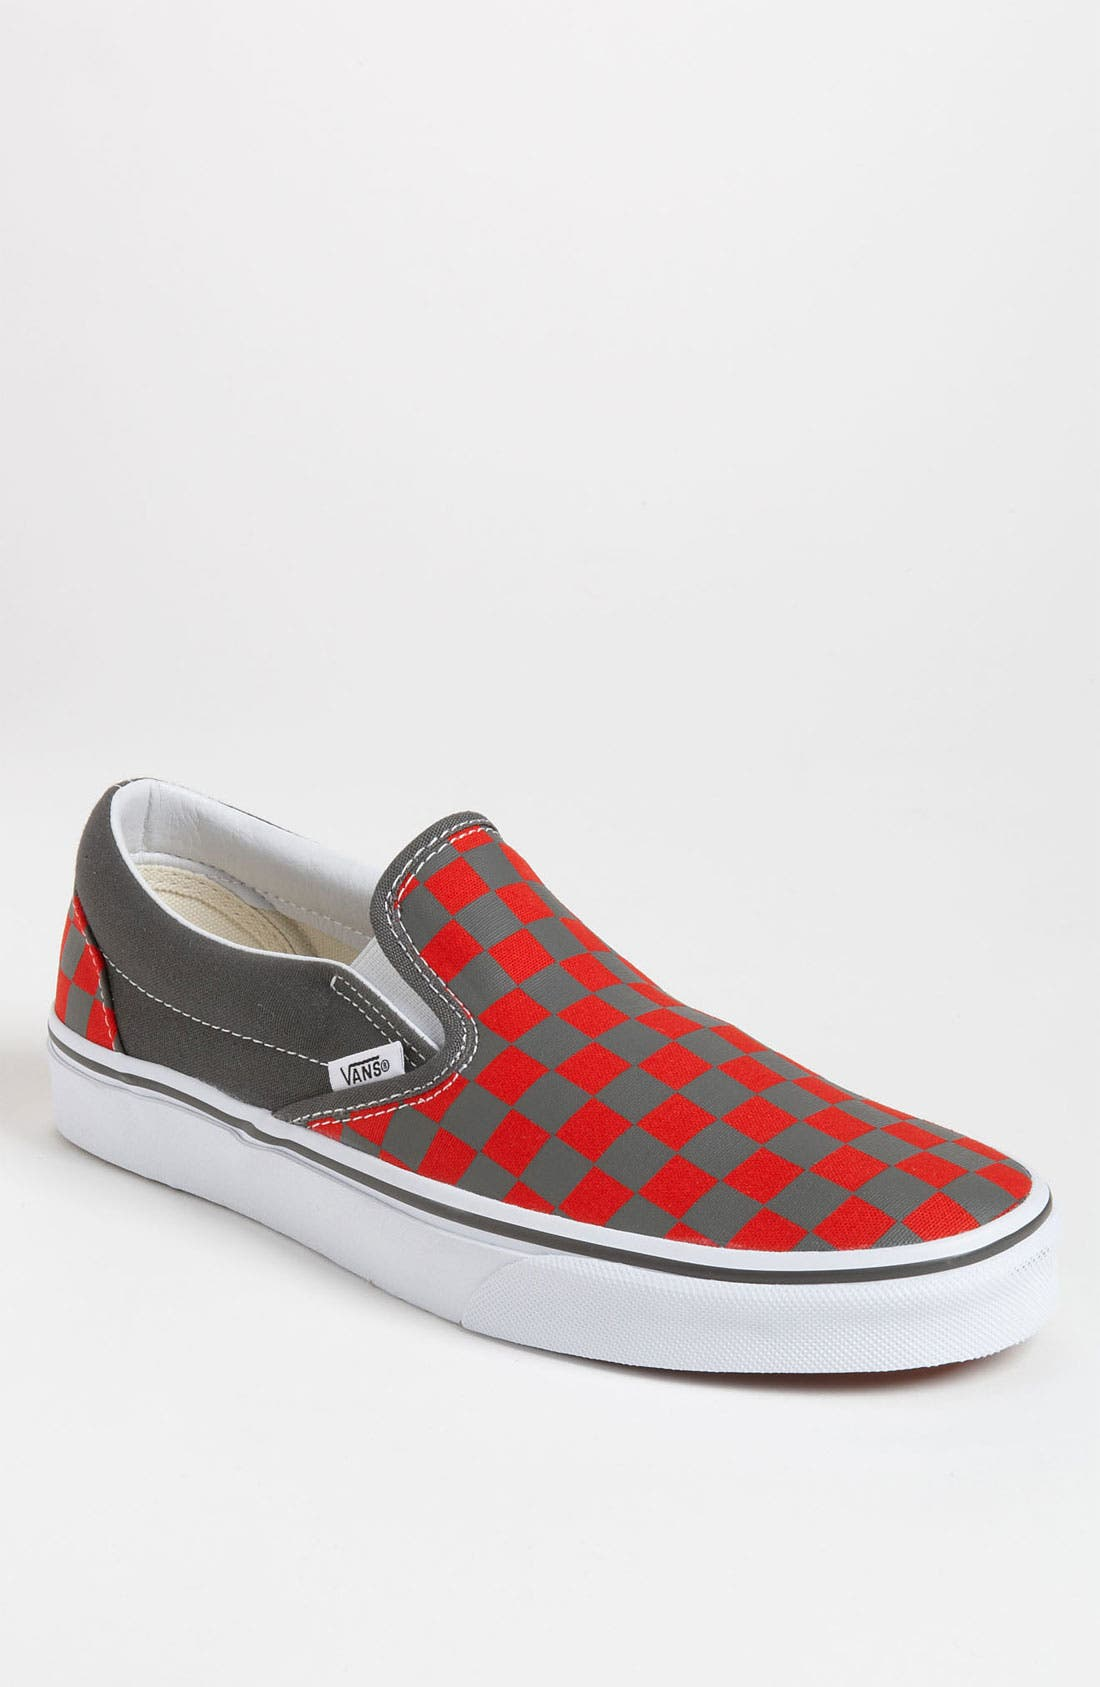 Main Image - Vans 'Checkerboard' Slip-On (Men)